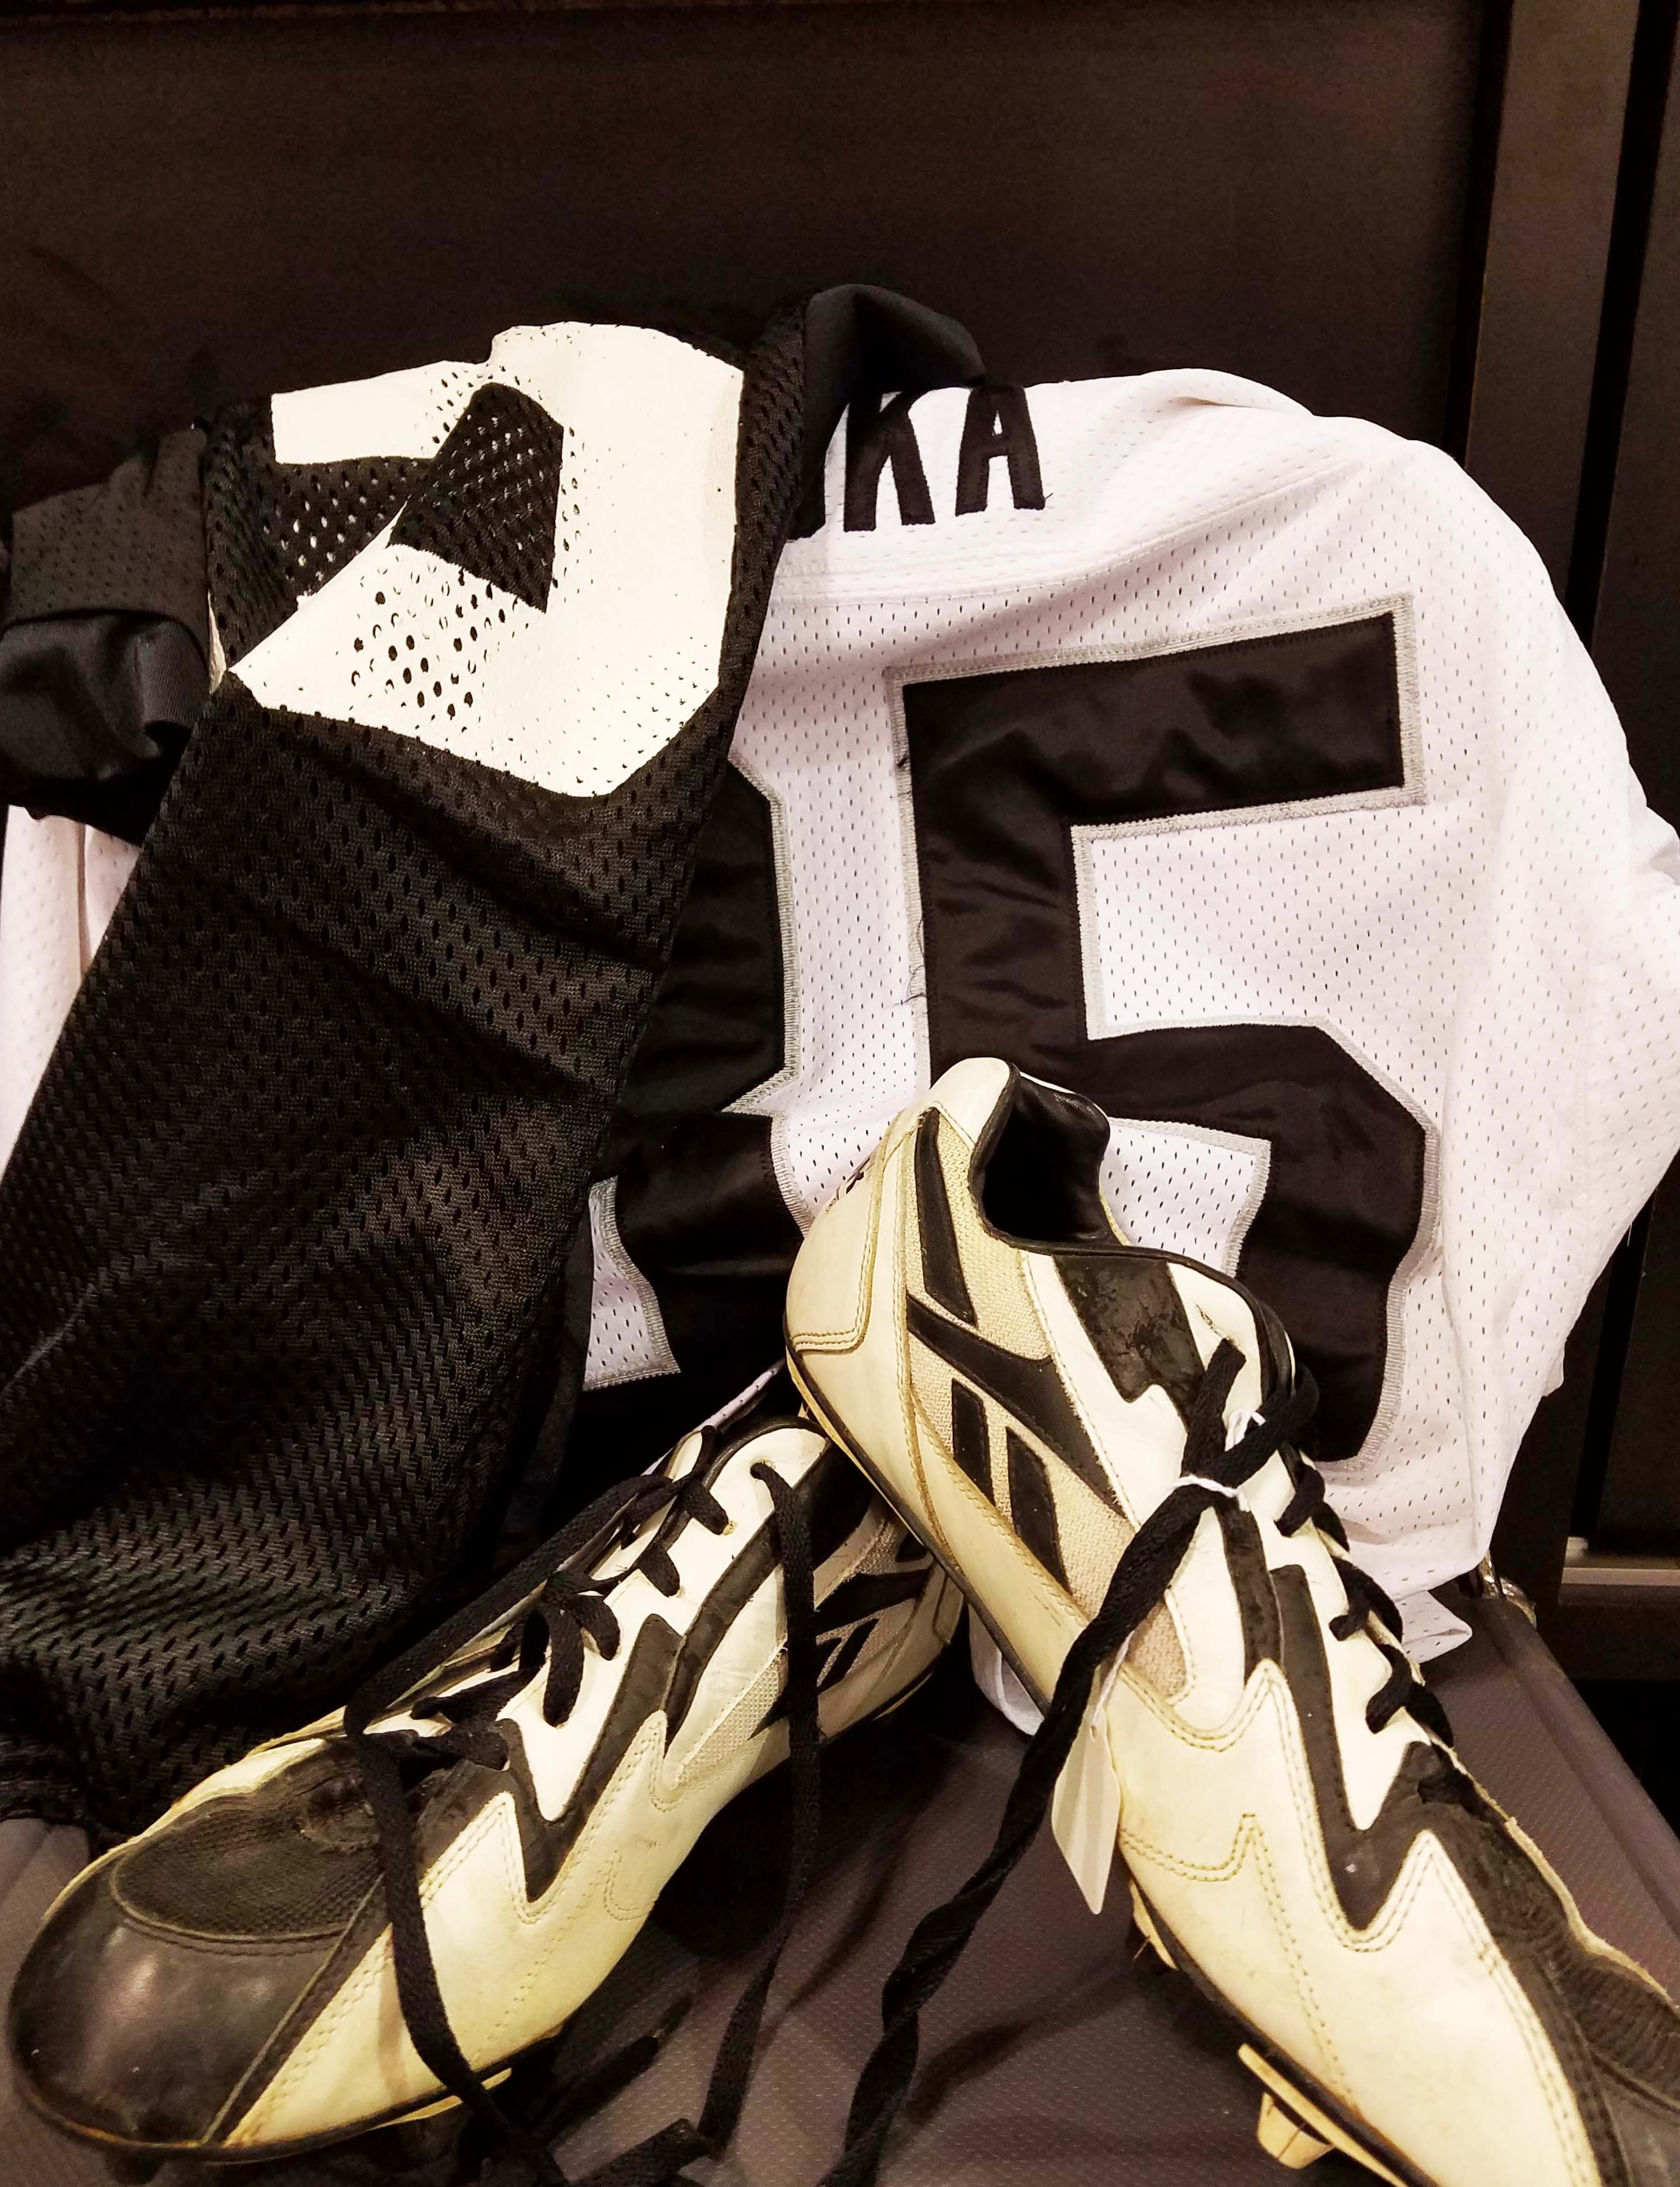 Oakland Raiders - Joe Aska Game-Worn Lot Jersey (2) & Game-Used, Signed Cleats